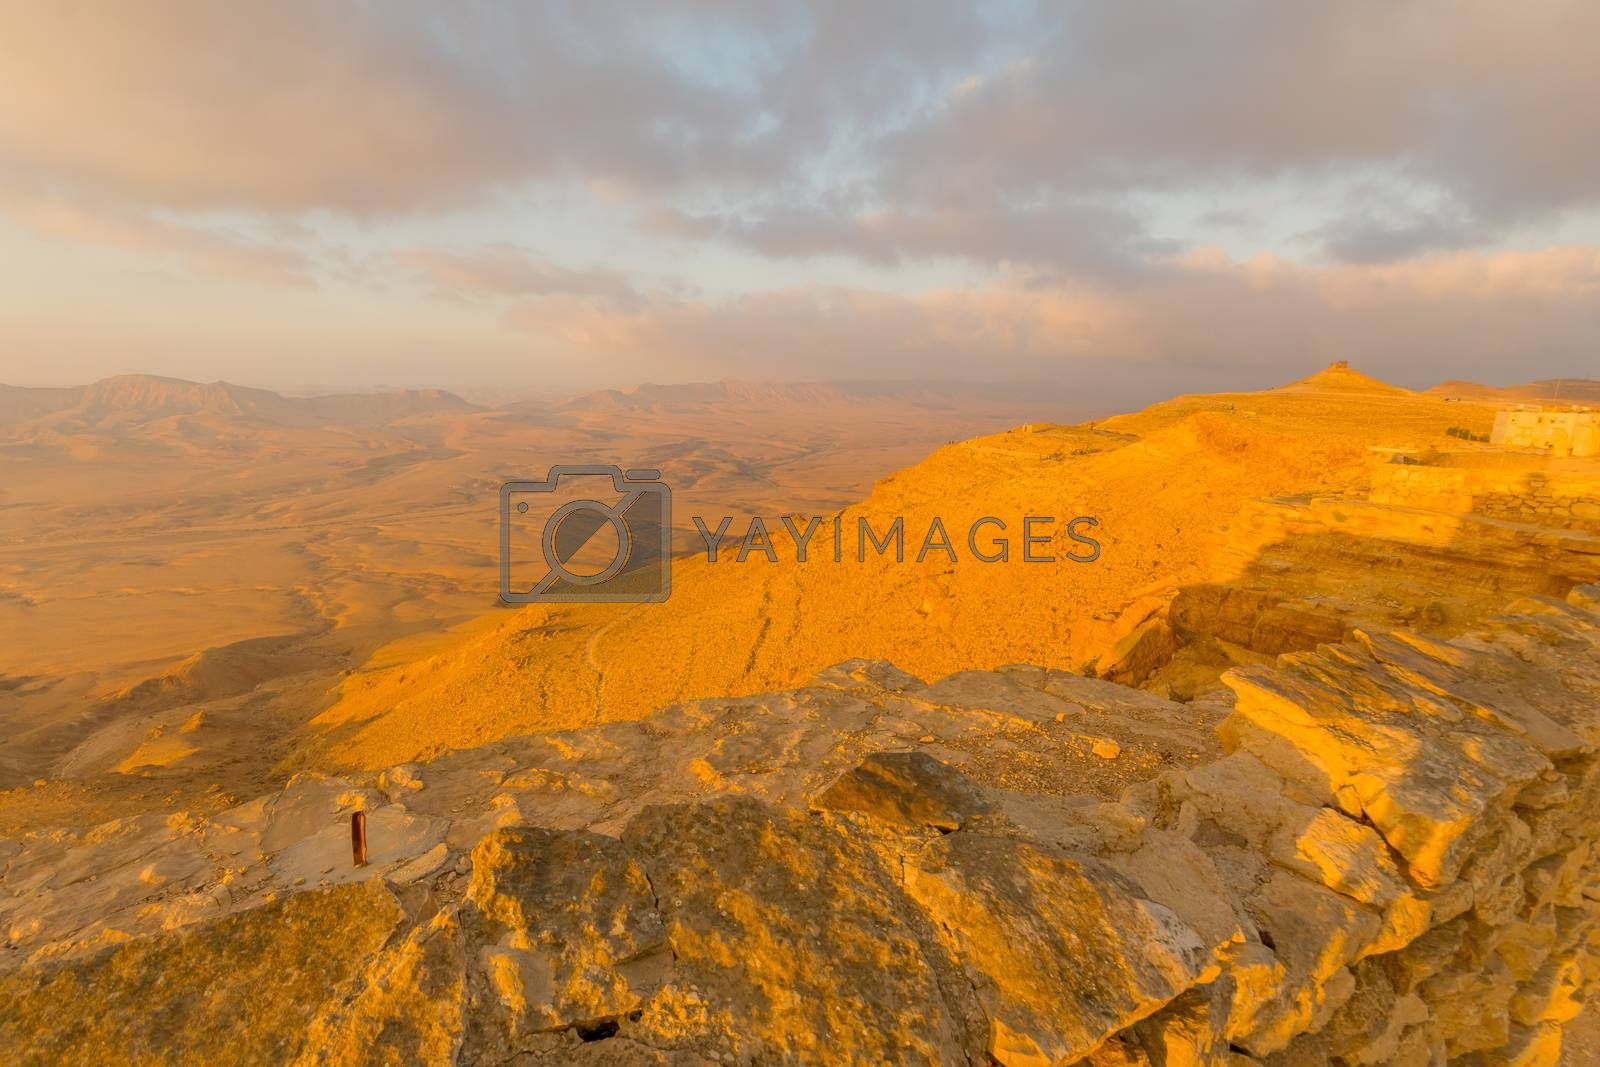 Sunrise view of cliffs and landscape in Makhtesh (crater) Ramon, the Negev Desert, Southern Israel